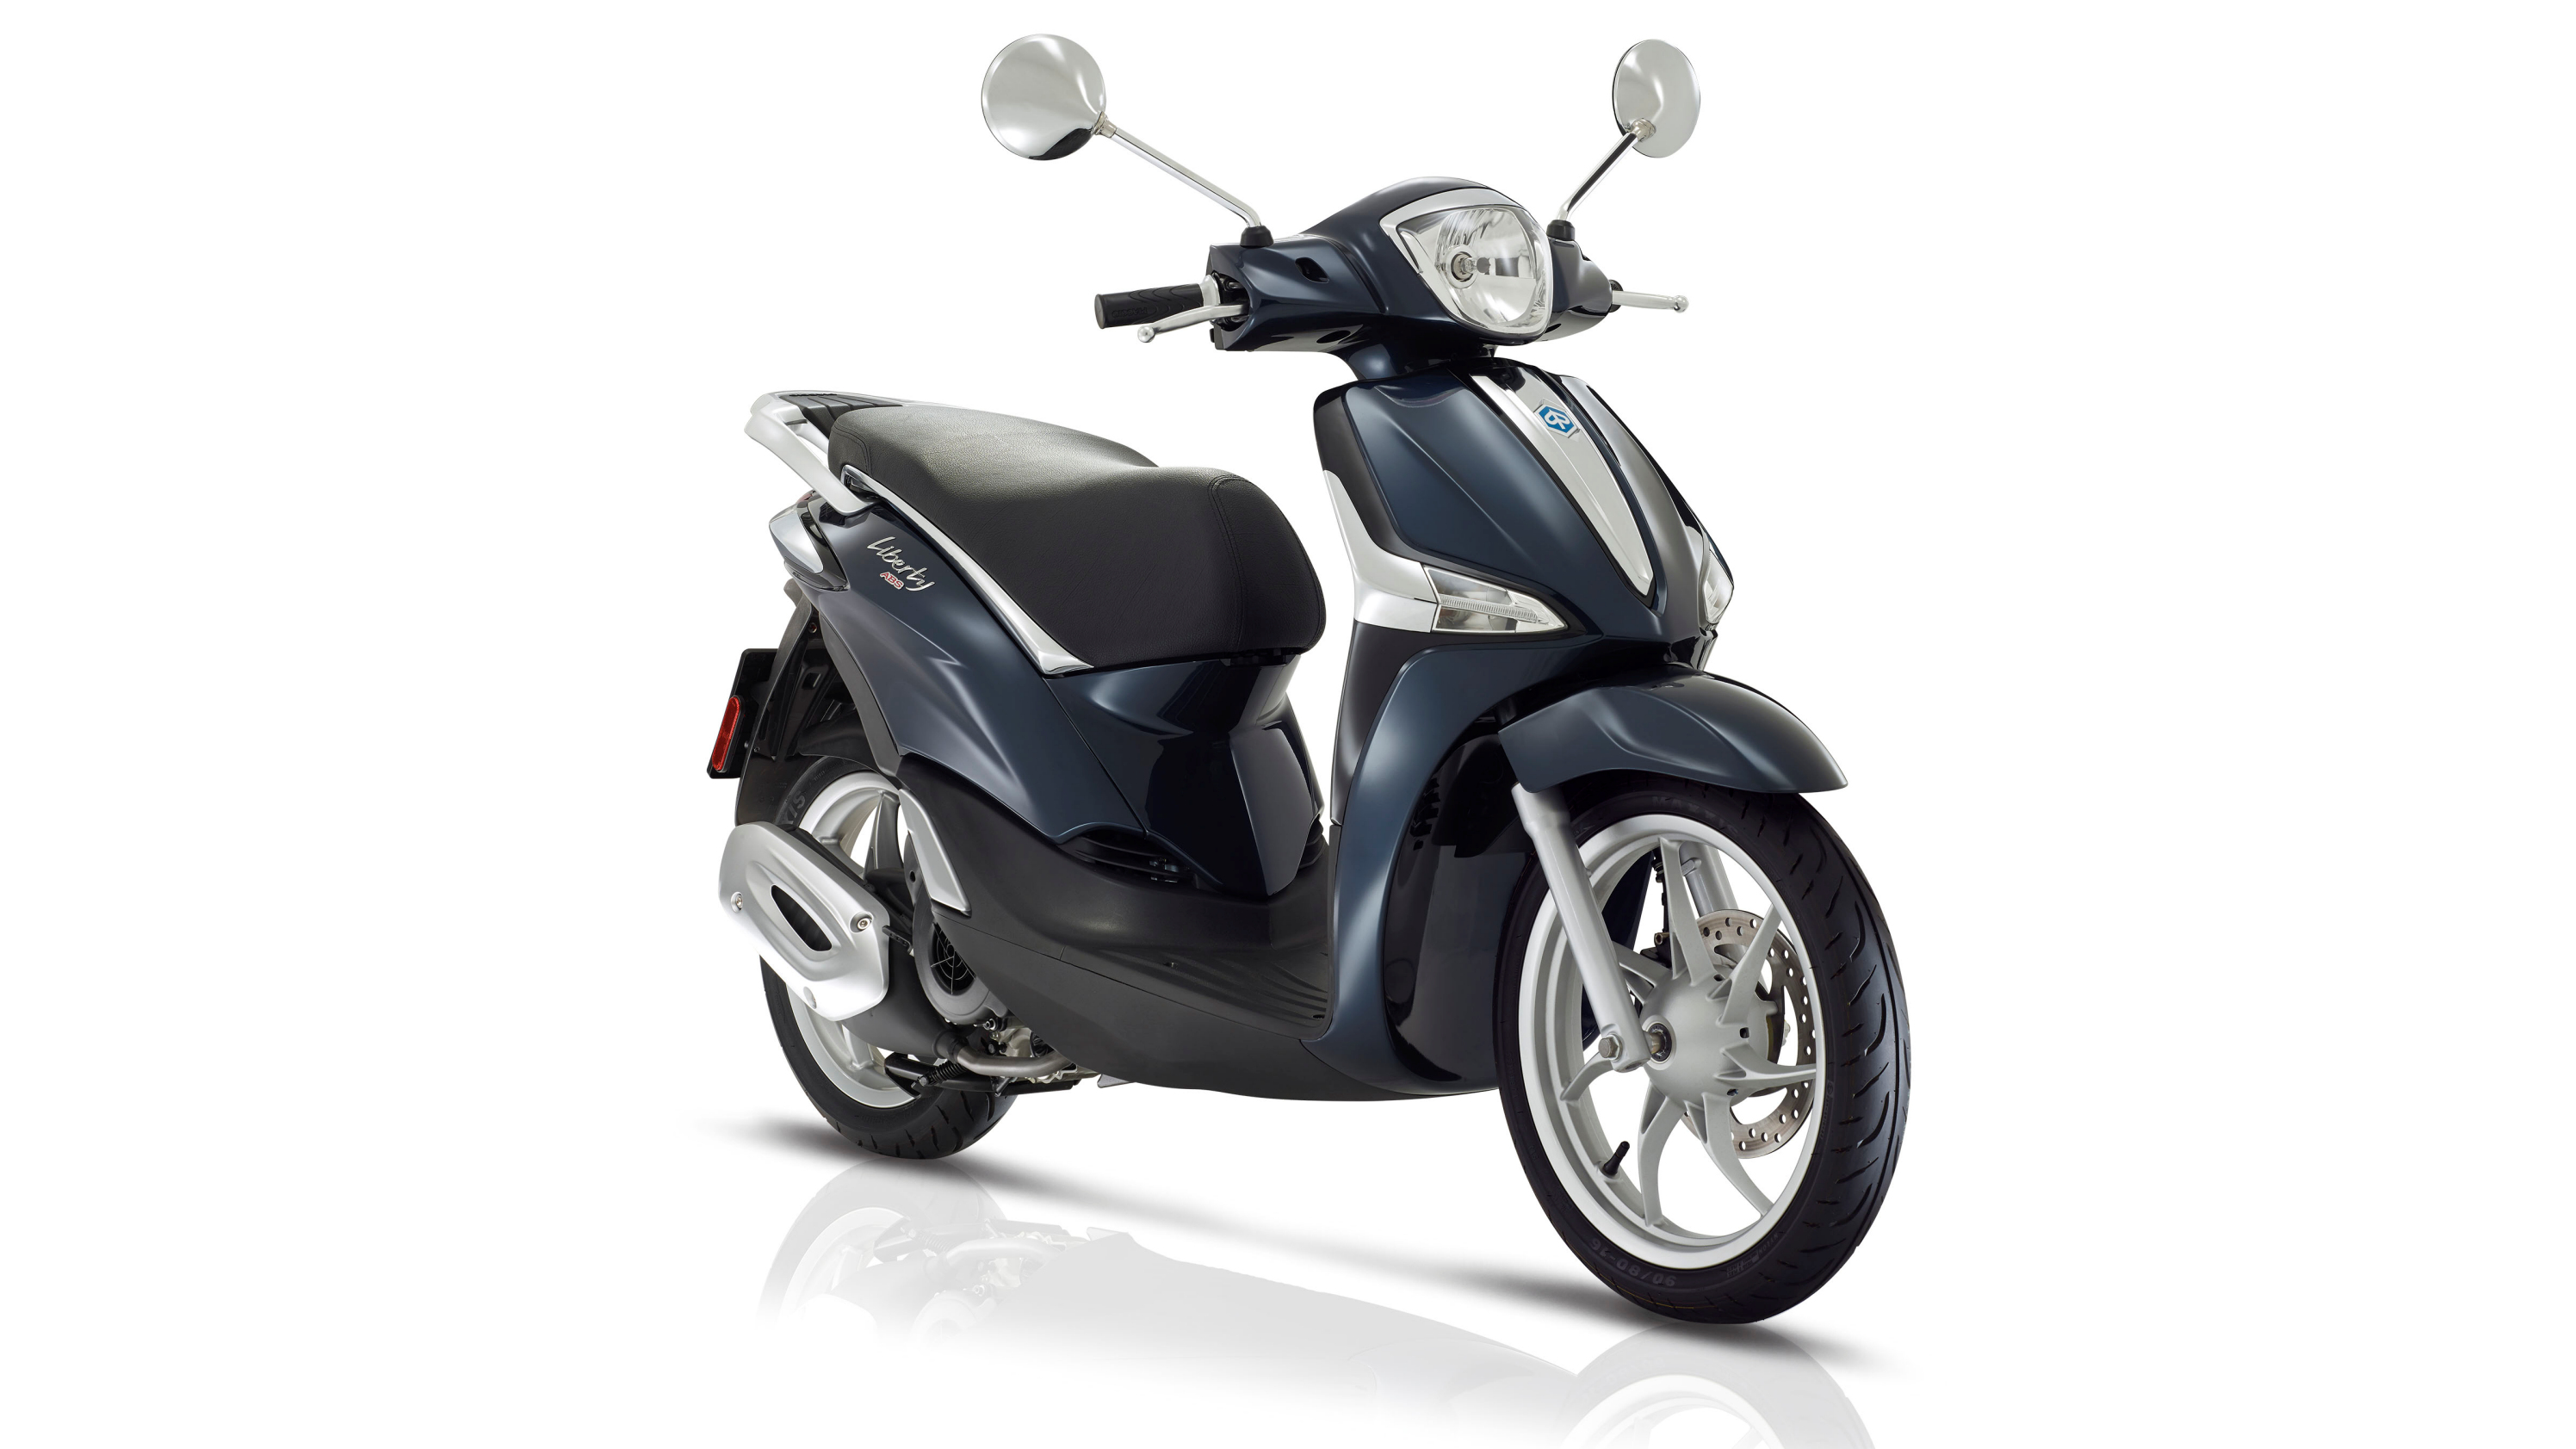 2017 - 2018 Piaggio Liberty | Top Speed